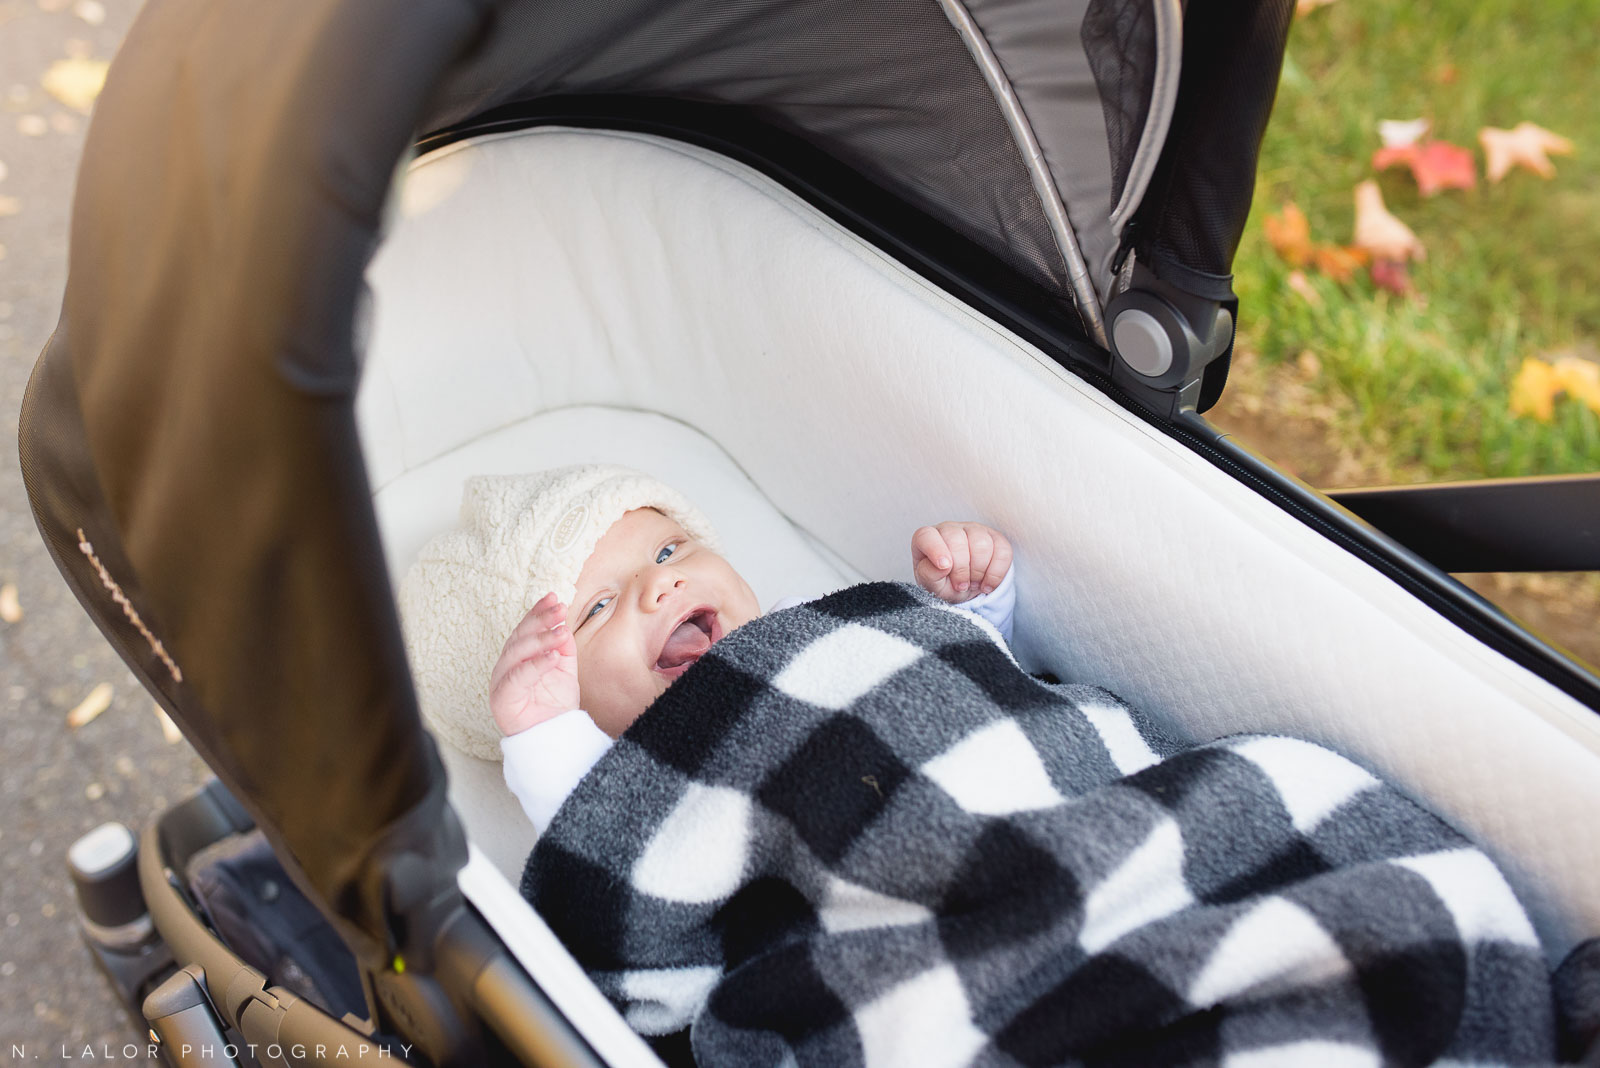 Happy baby boy in a stroller. Lots of smiles! Lifestyle portrait by N. Lalor Photography. Fairfield County, CT.